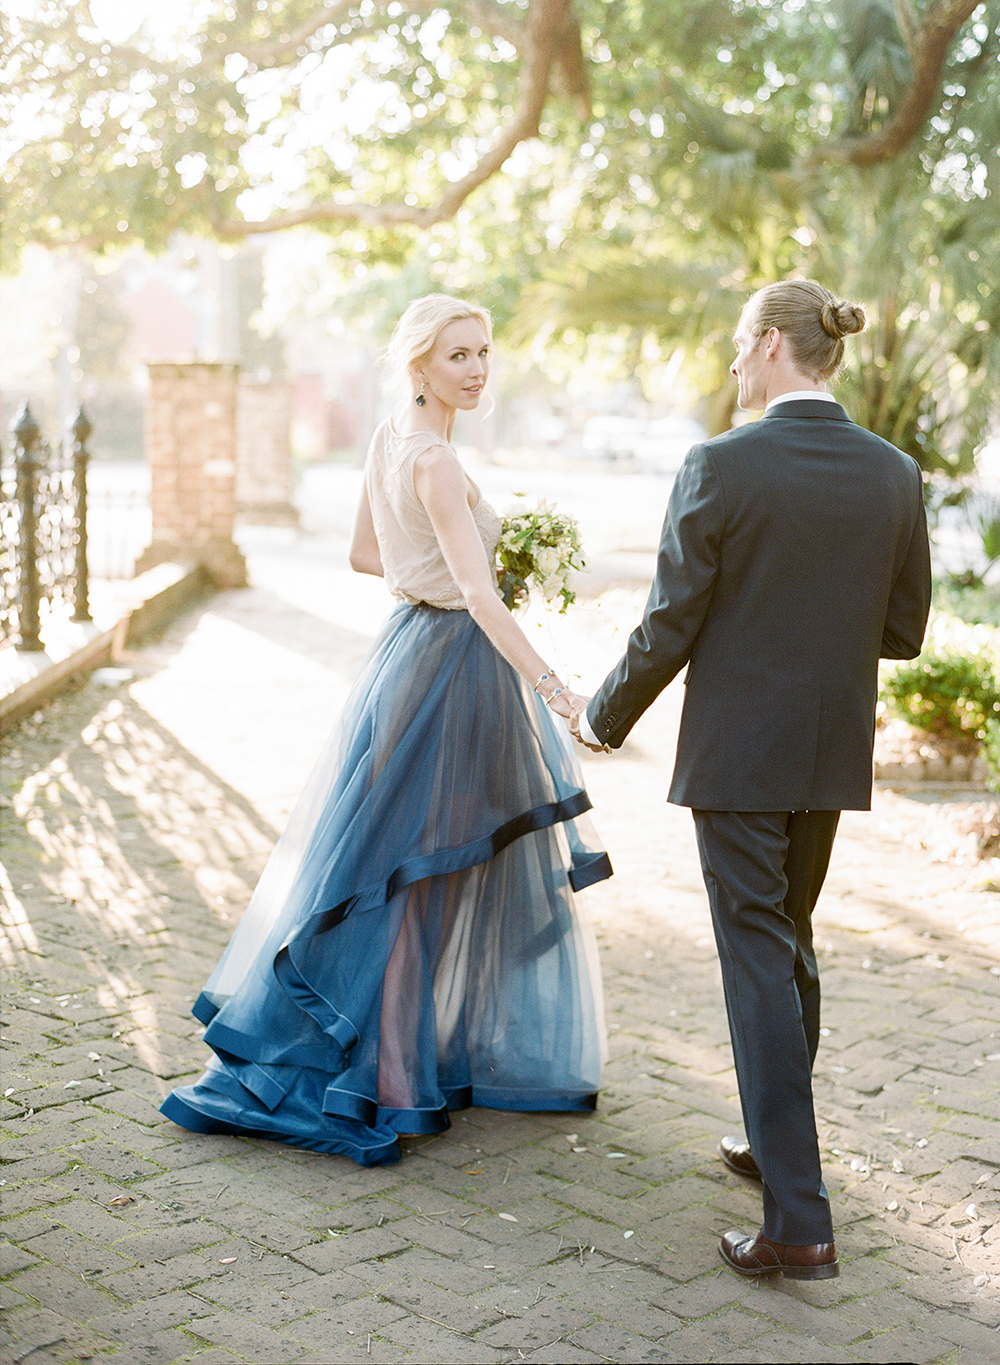 Cyanotype Inspired Wedding Ideas - photo by Lisa Blume Photography http://ruffledblog.com/cyanotype-inspired-wedding-ideas